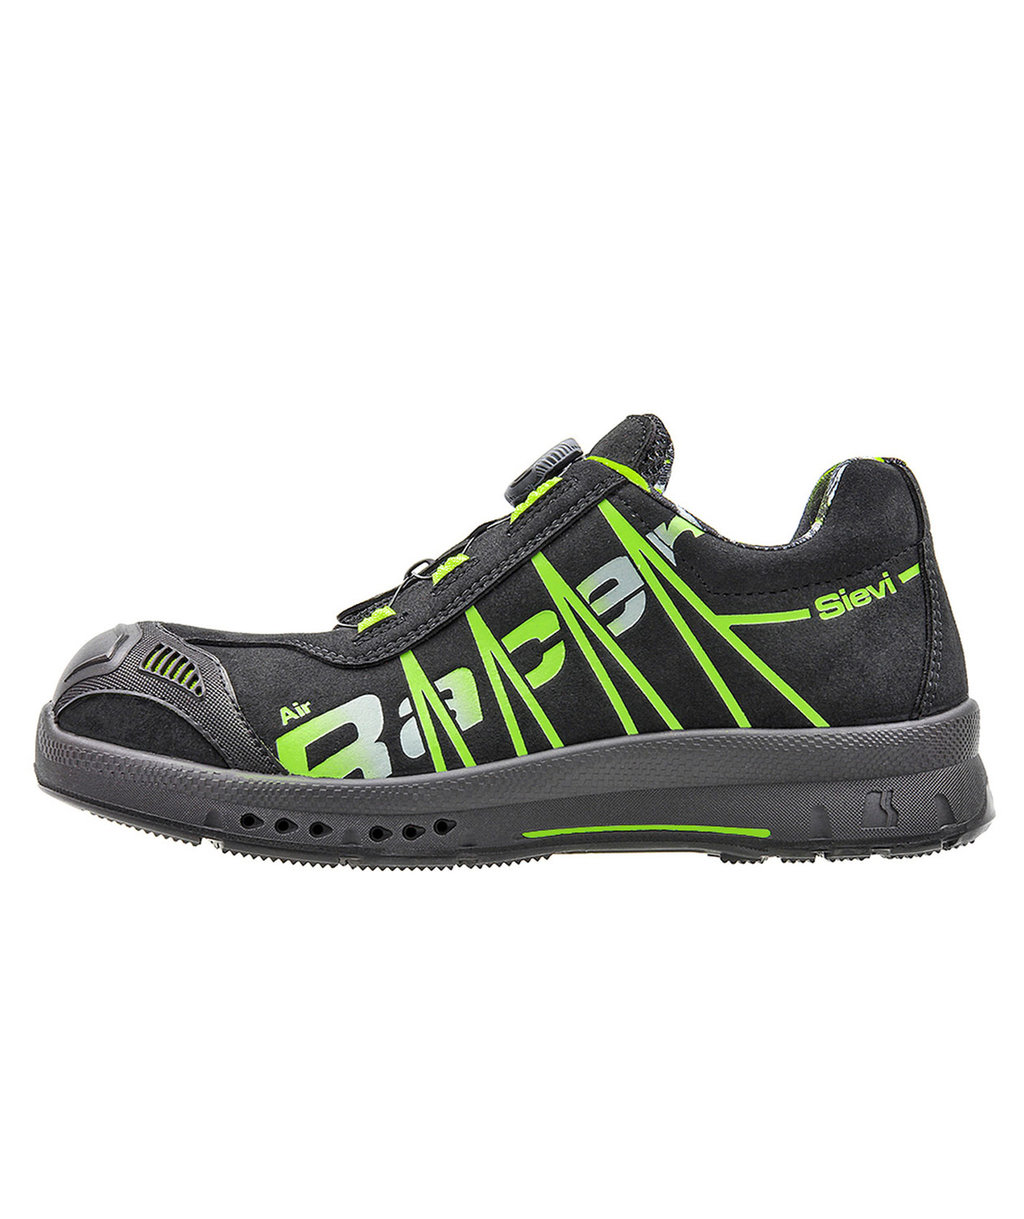 Sievi Air R3 Roller safety shoes S3, Black/Green